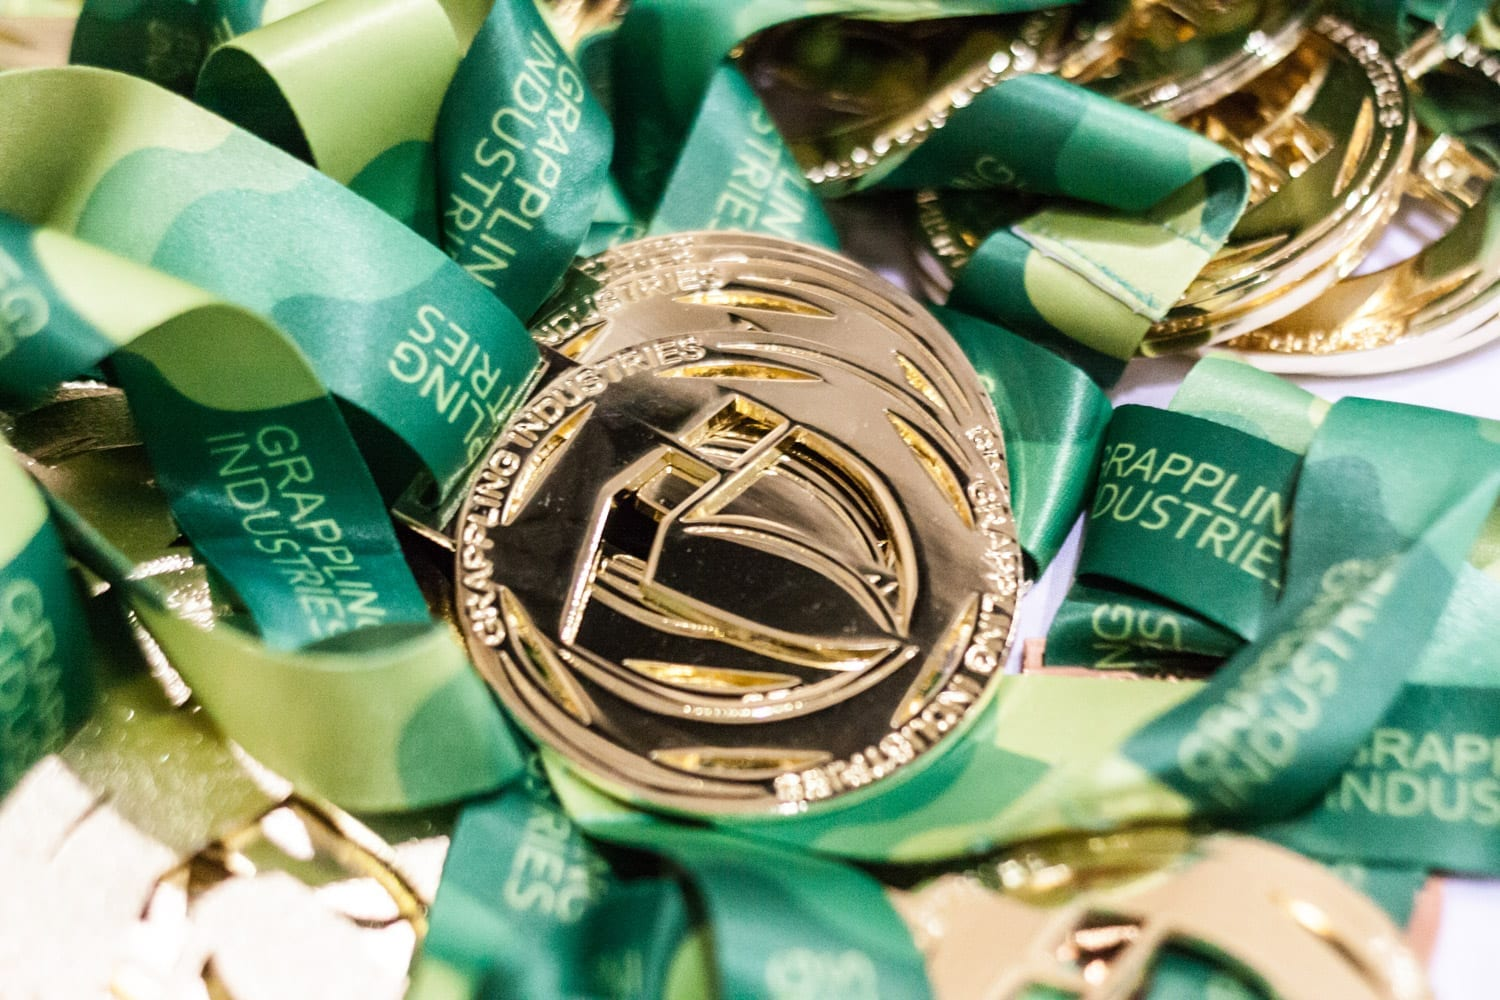 a photo of the grappling industries gold medal